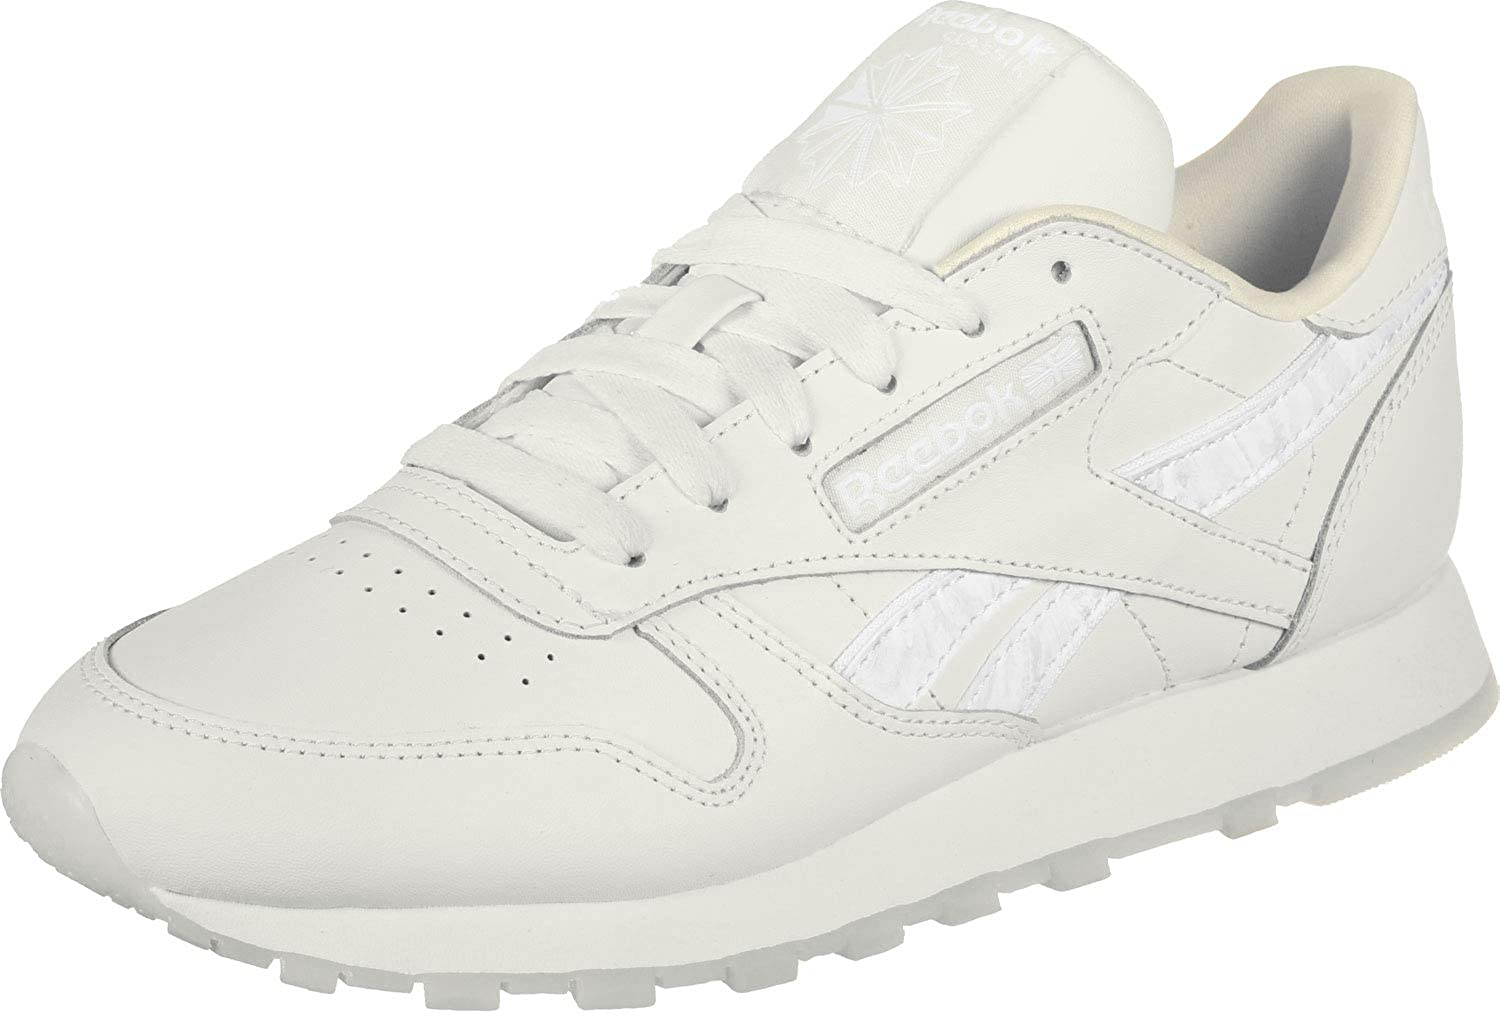 Reebok Damen Classic Leather Turnschuhe Kalk